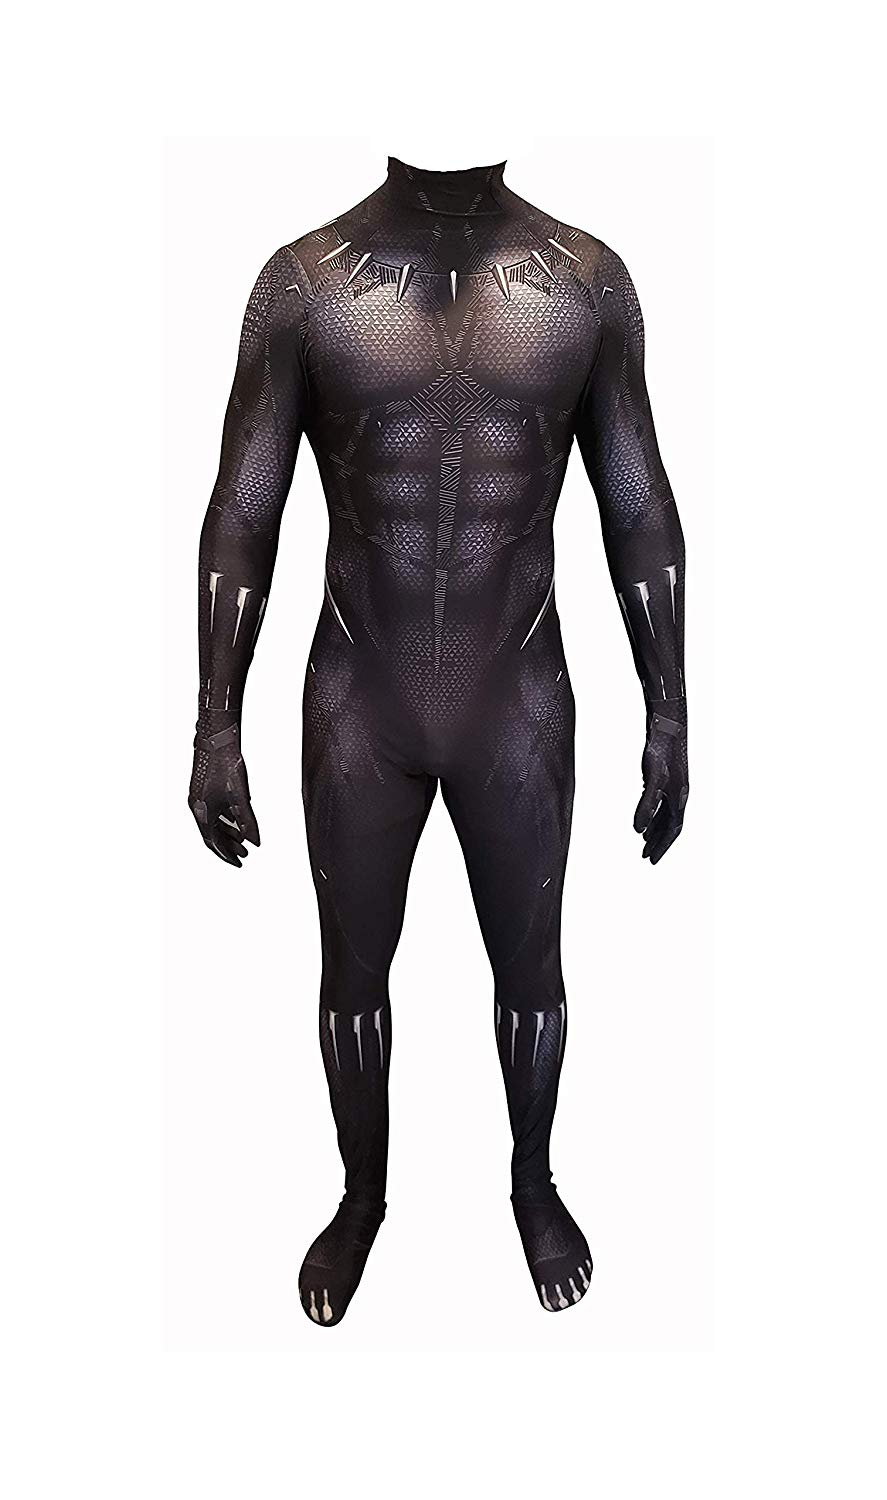 Black Panther Suit - Aesthetic Cosplay, LLC